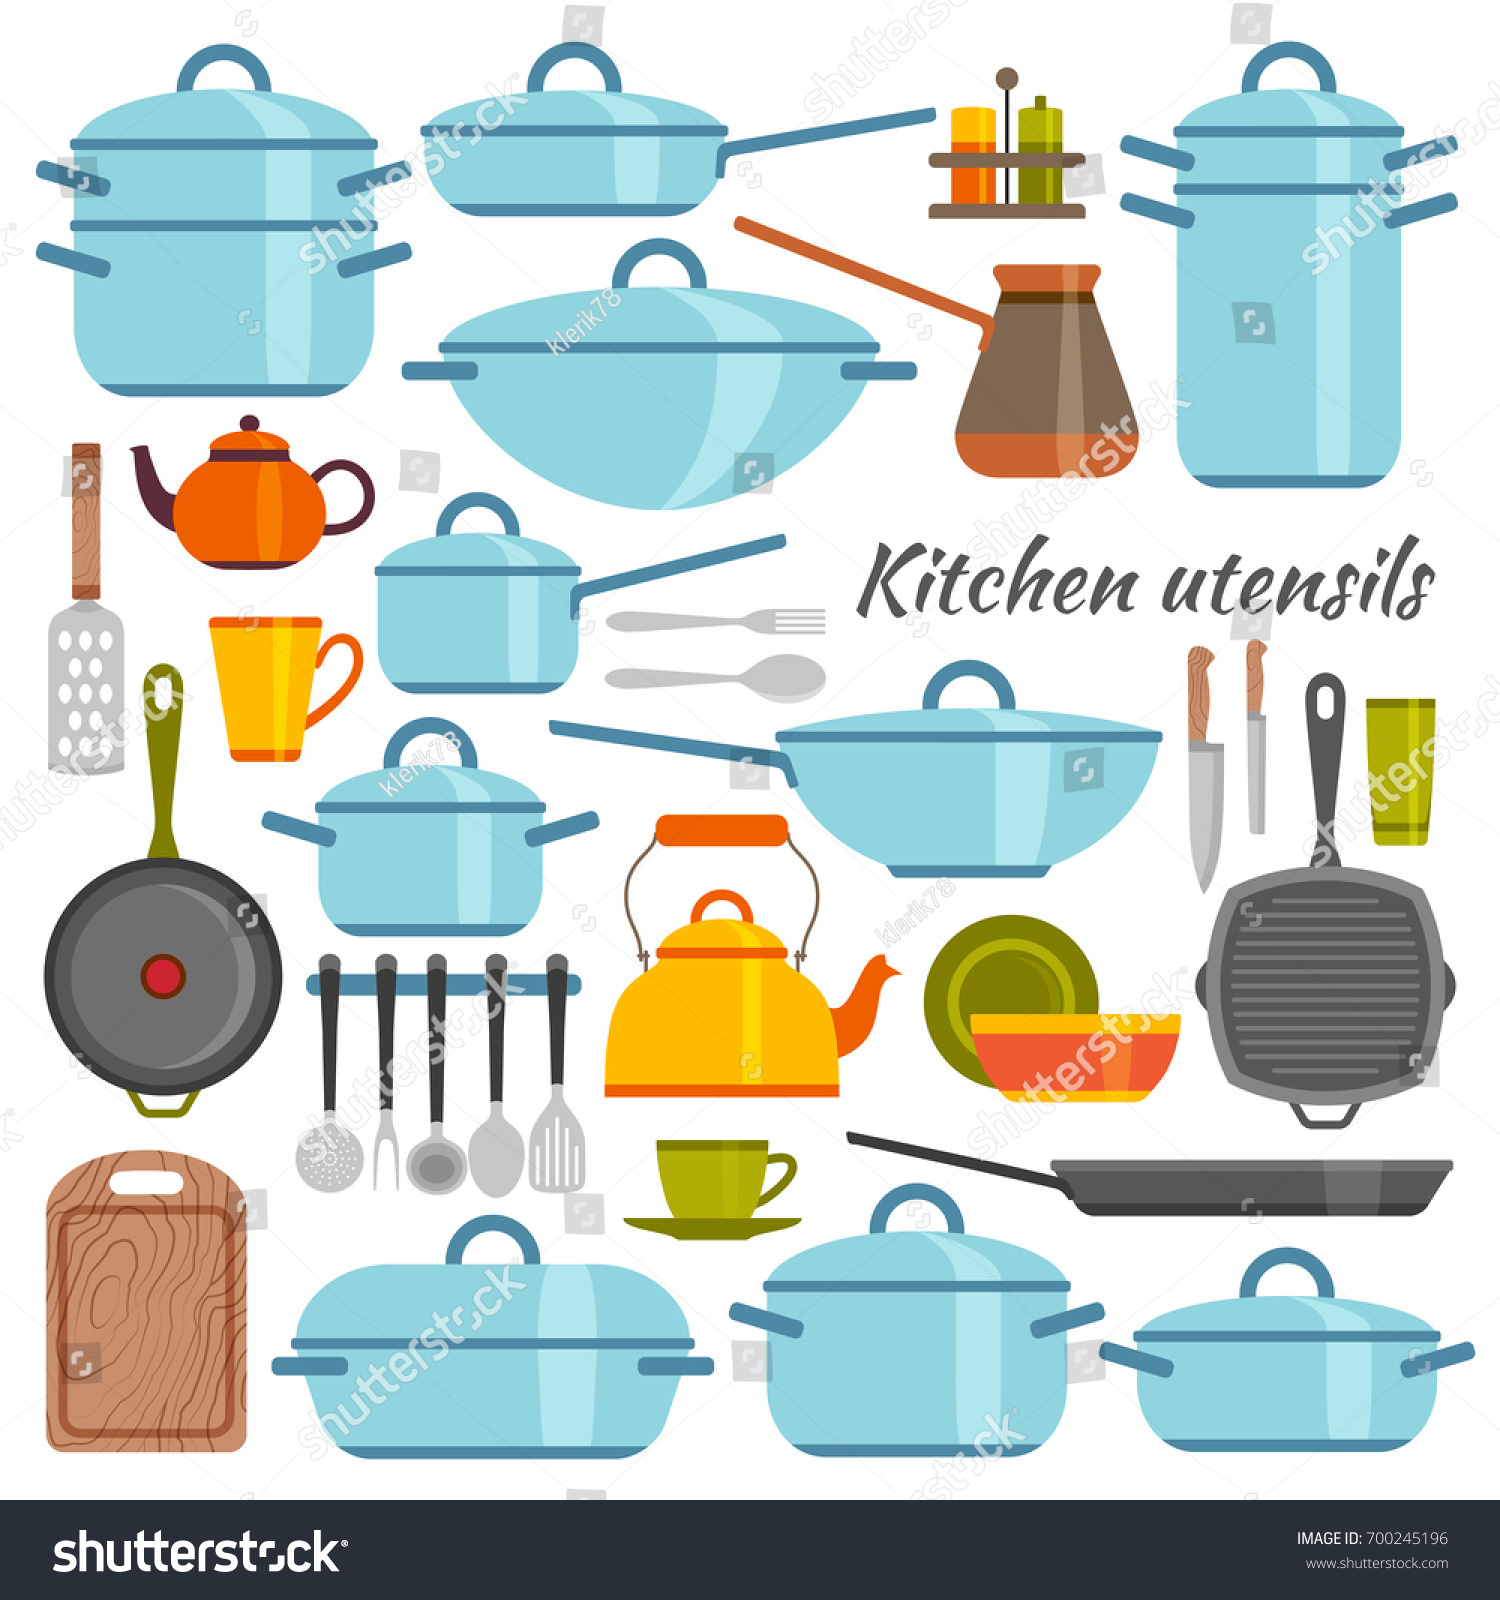 Kitchen Utensils Flat Icons Set Vector Stock Vector HD (Royalty Free ...